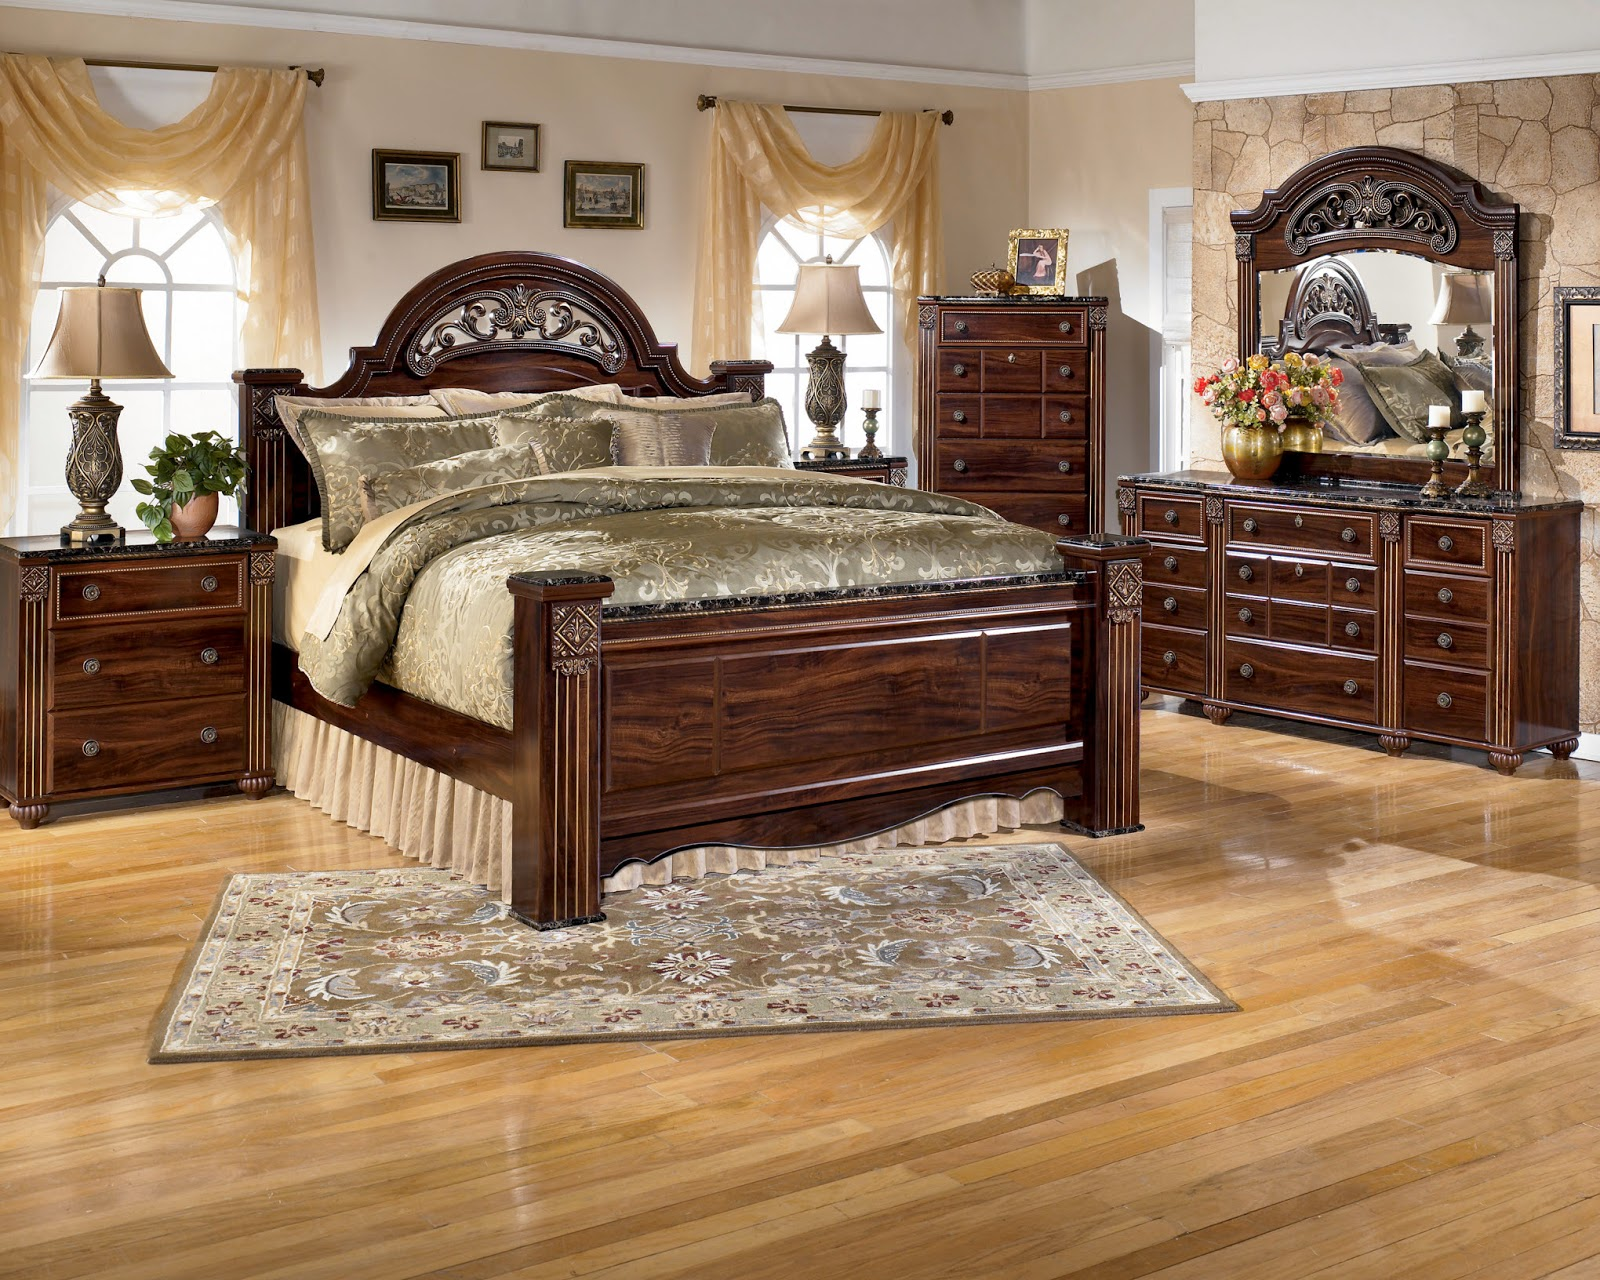 Greensburg Bedroom Set - Interior Design